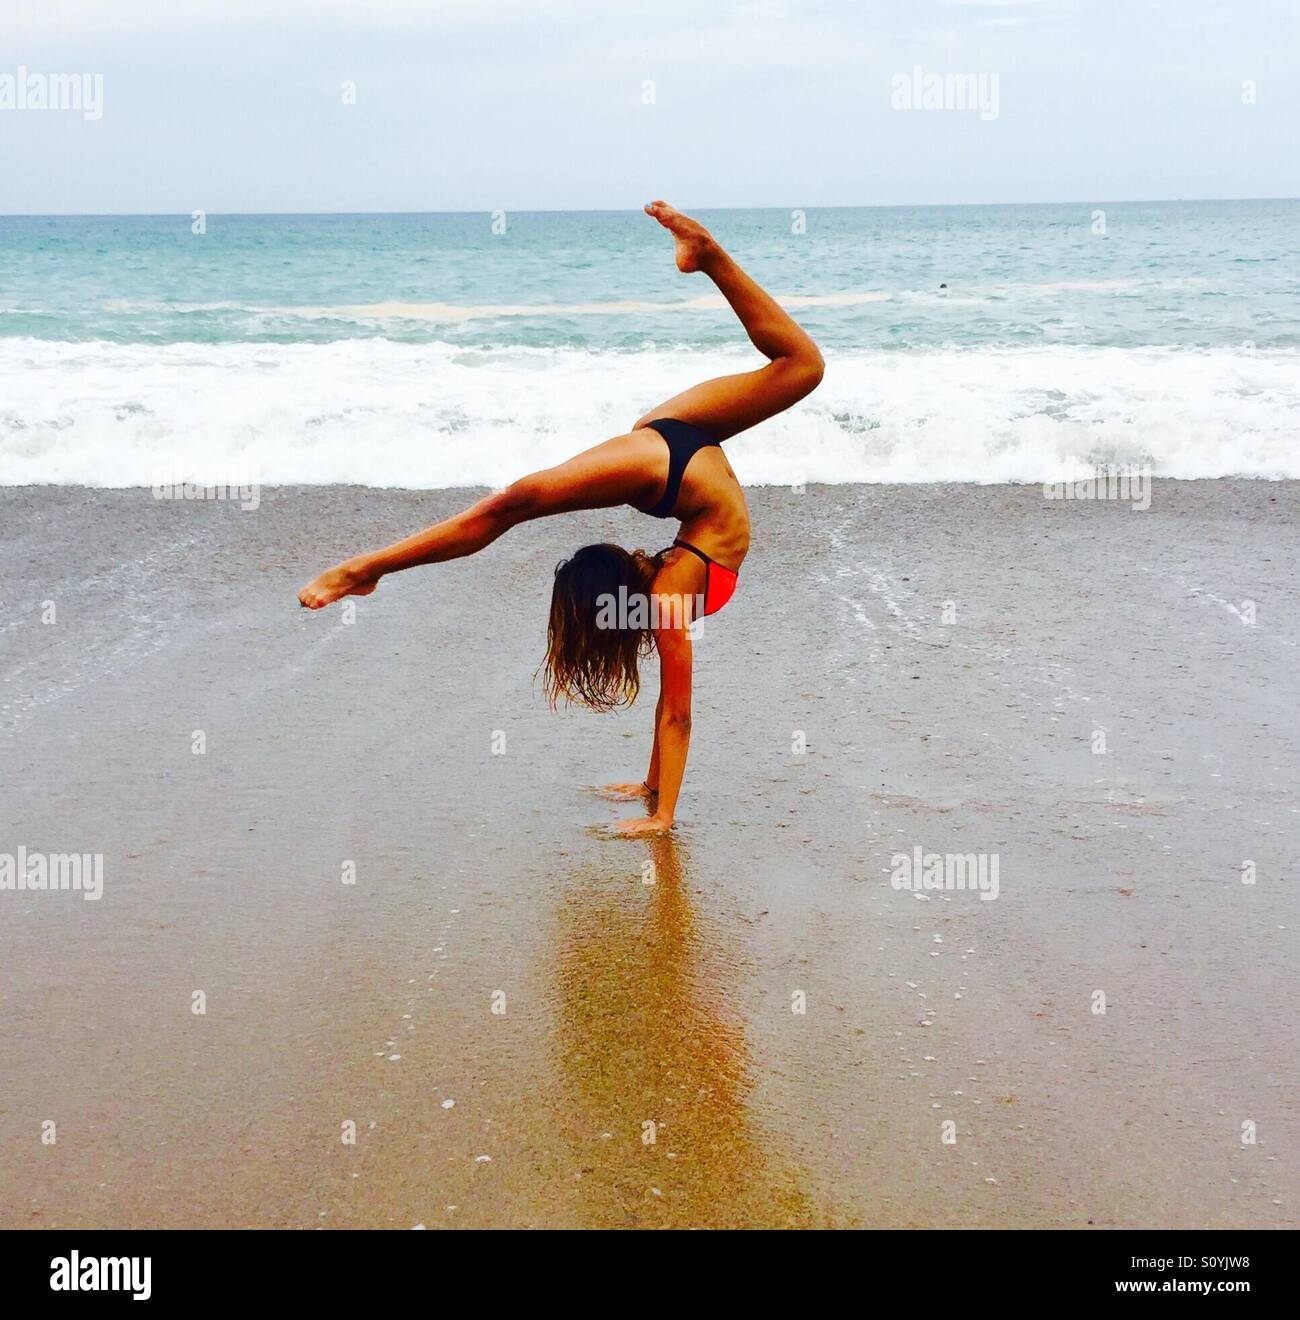 66de5d75d Doing flips on the beach Stock Photo  310394148 - Alamy